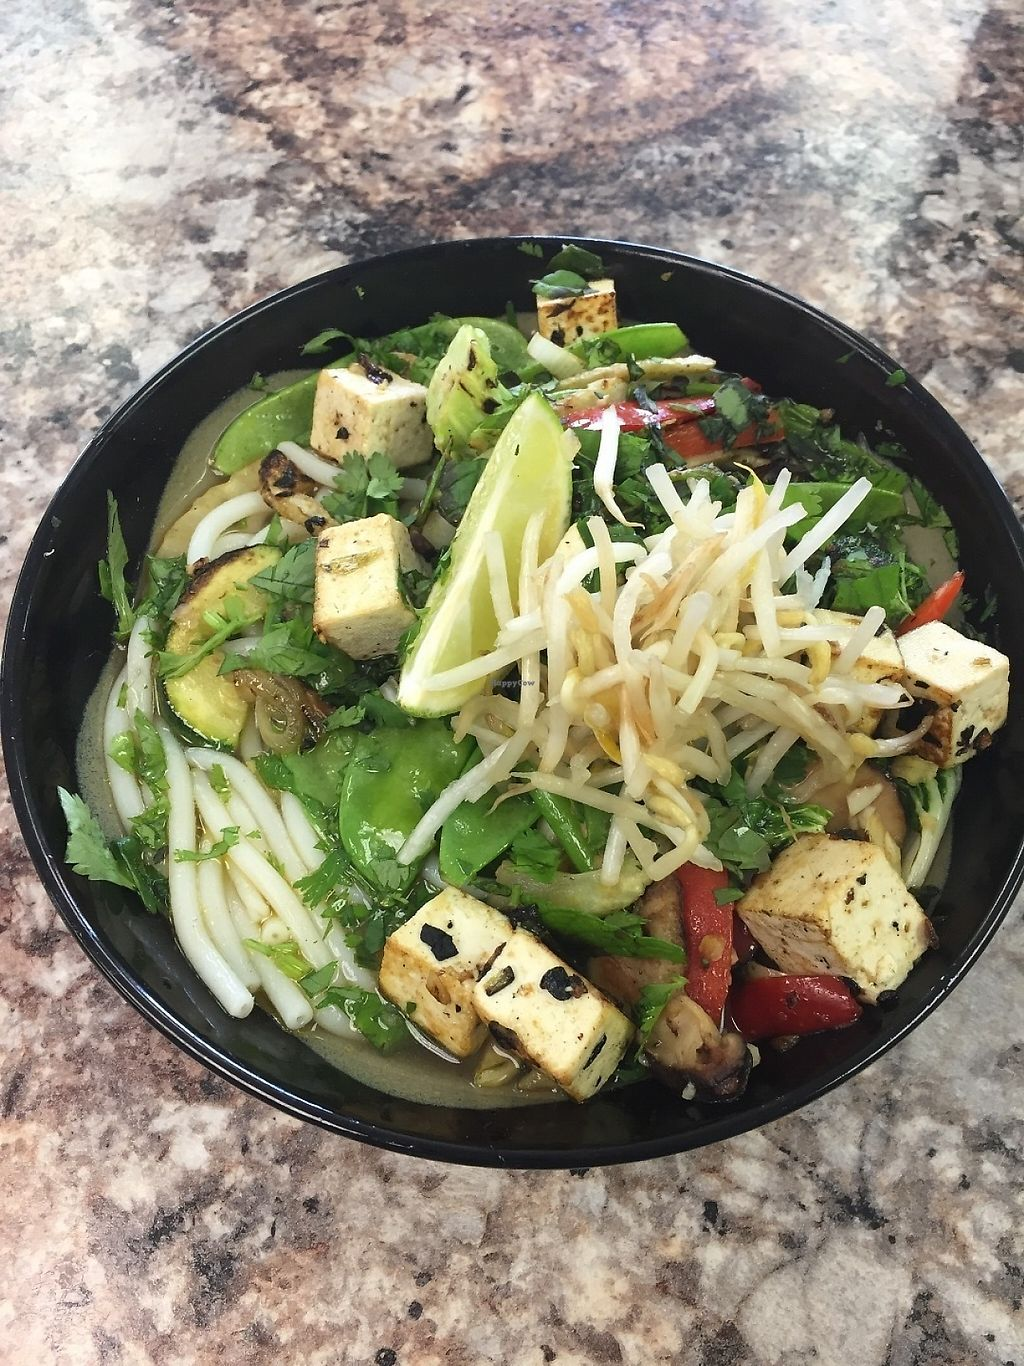 """Photo of Clean Roots Vegetarian Cuisine  by <a href=""""/members/profile/JanLandis"""">JanLandis</a> <br/>Mo' Pho <br/> May 26, 2017  - <a href='/contact/abuse/image/92842/262585'>Report</a>"""